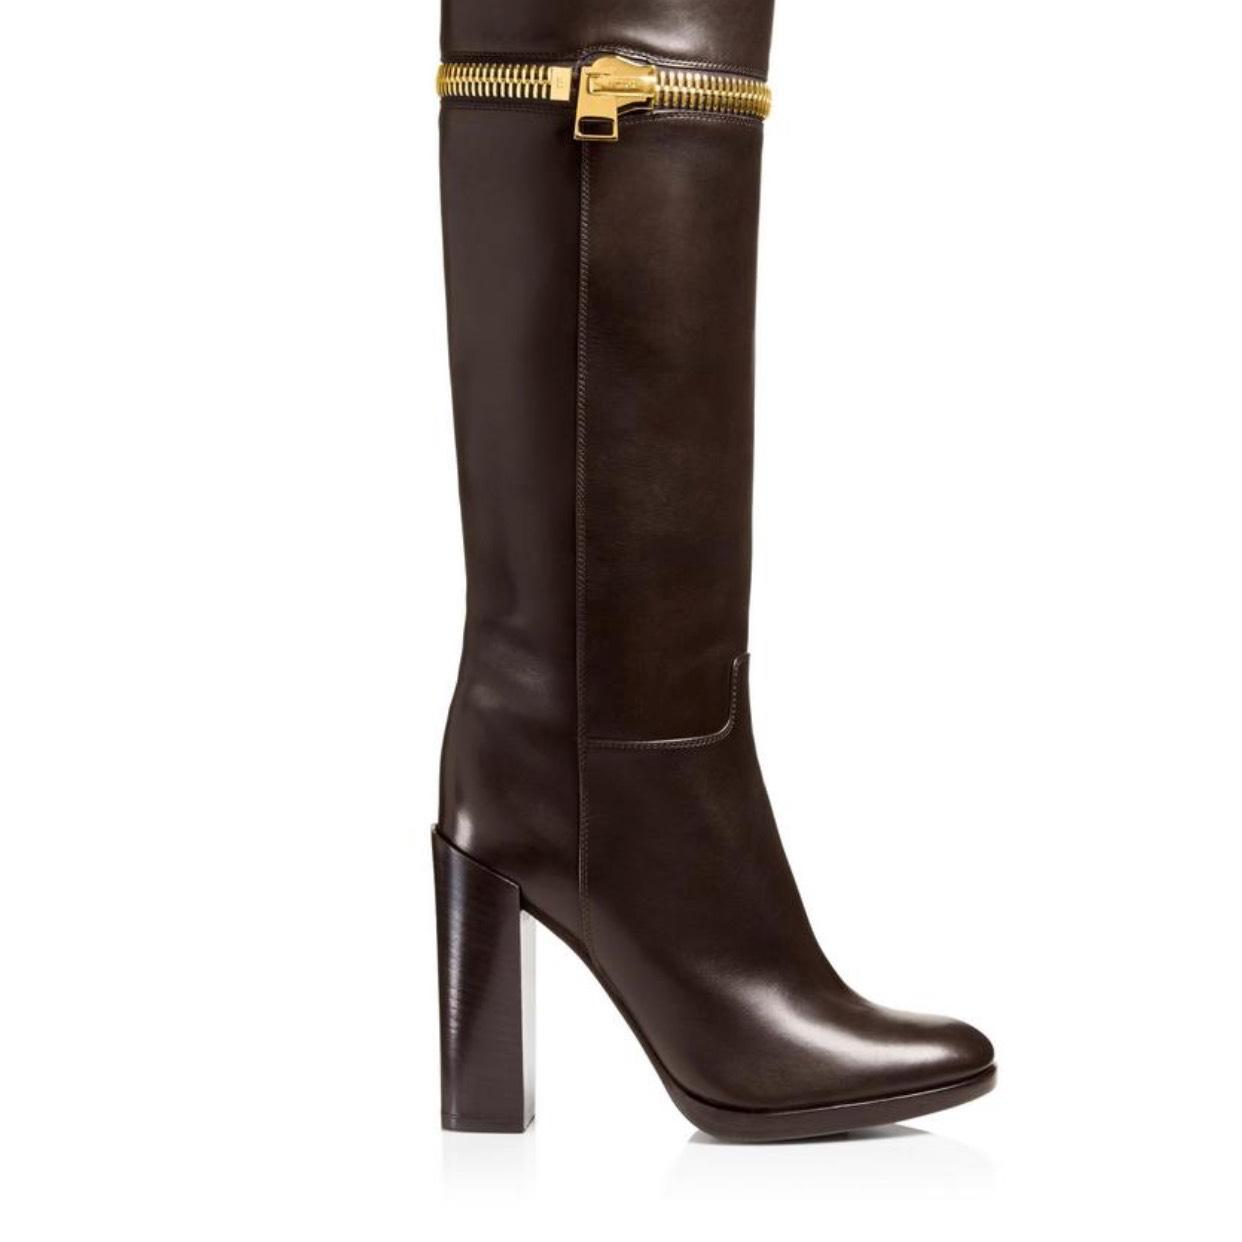 tom ford brown zip boots booties size us 11 regular m b